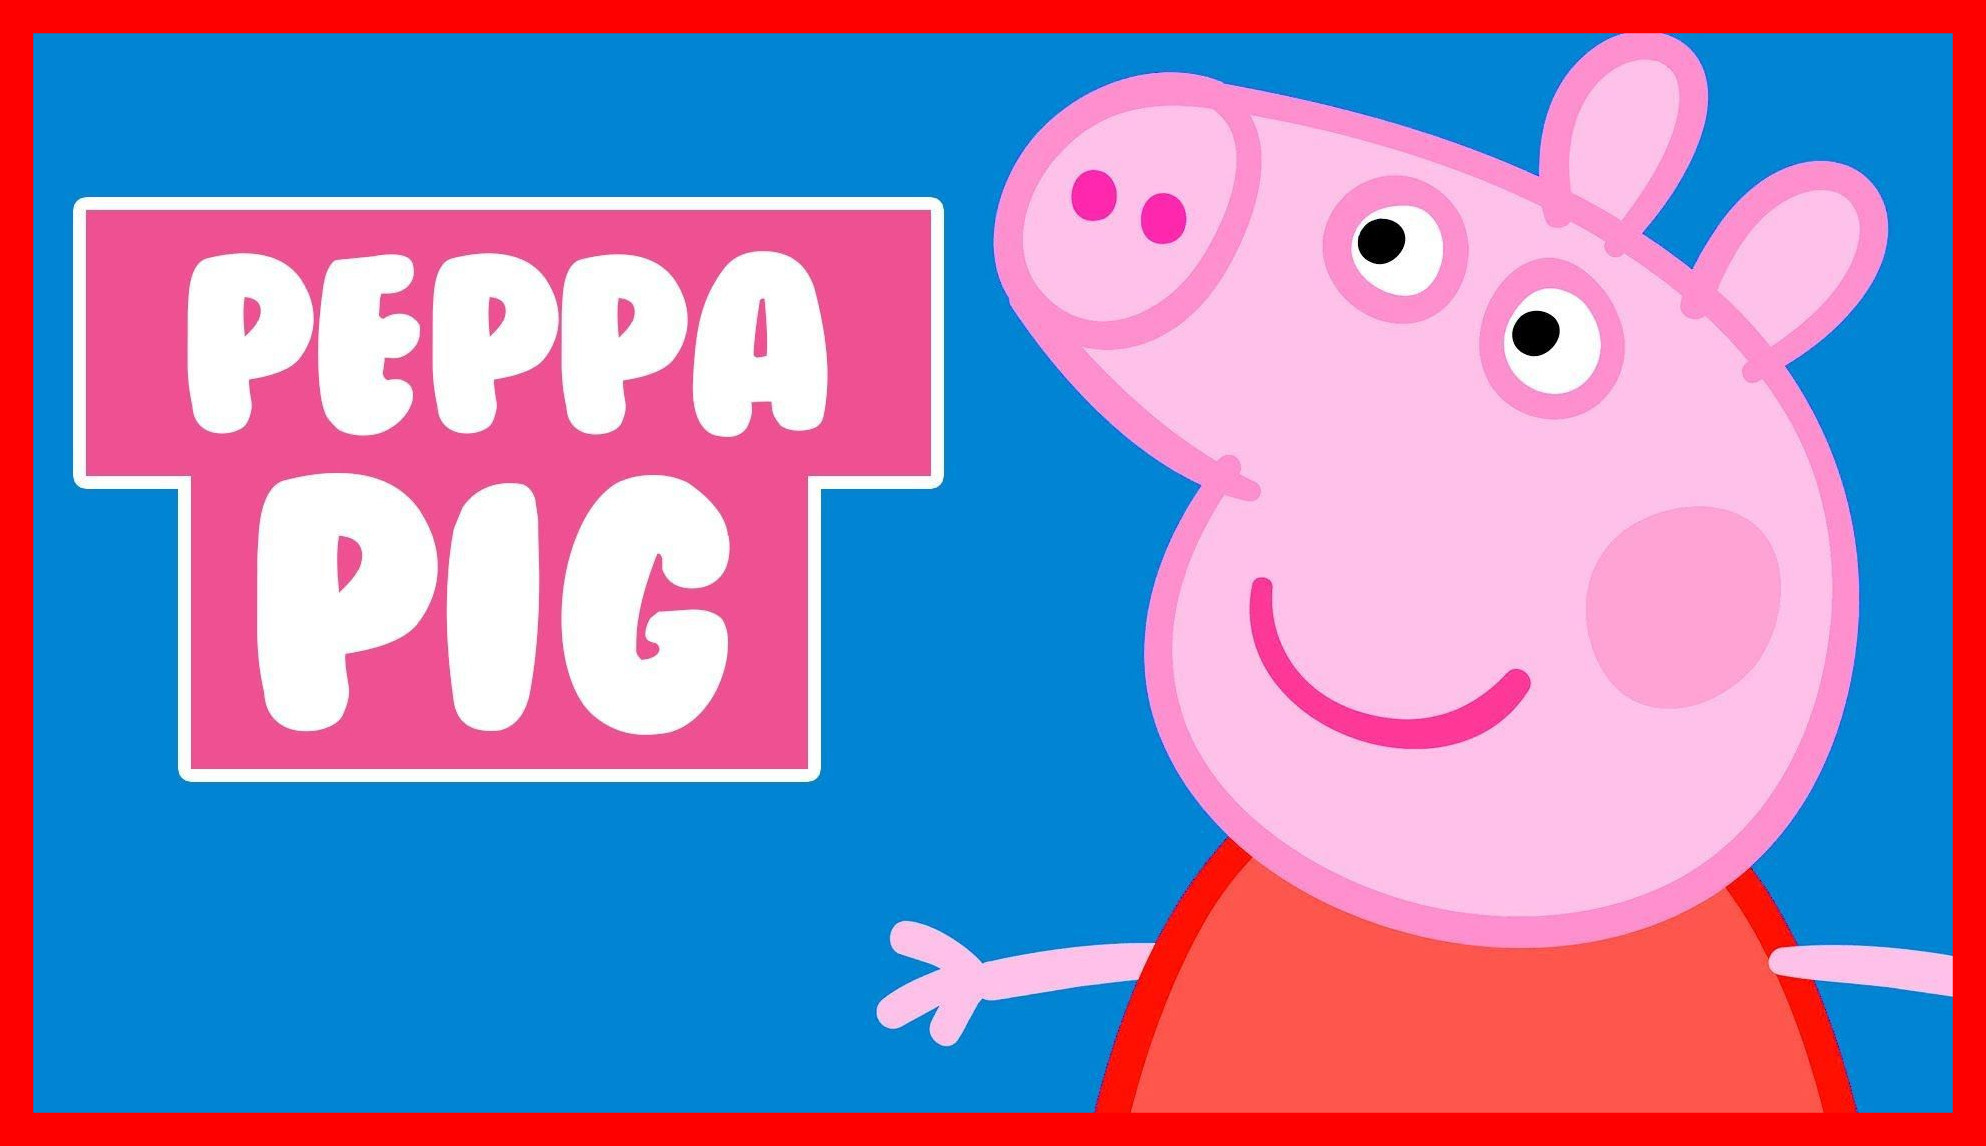 1920x1080 Cartoon Wallpapers. Download the following Peppa Pig .